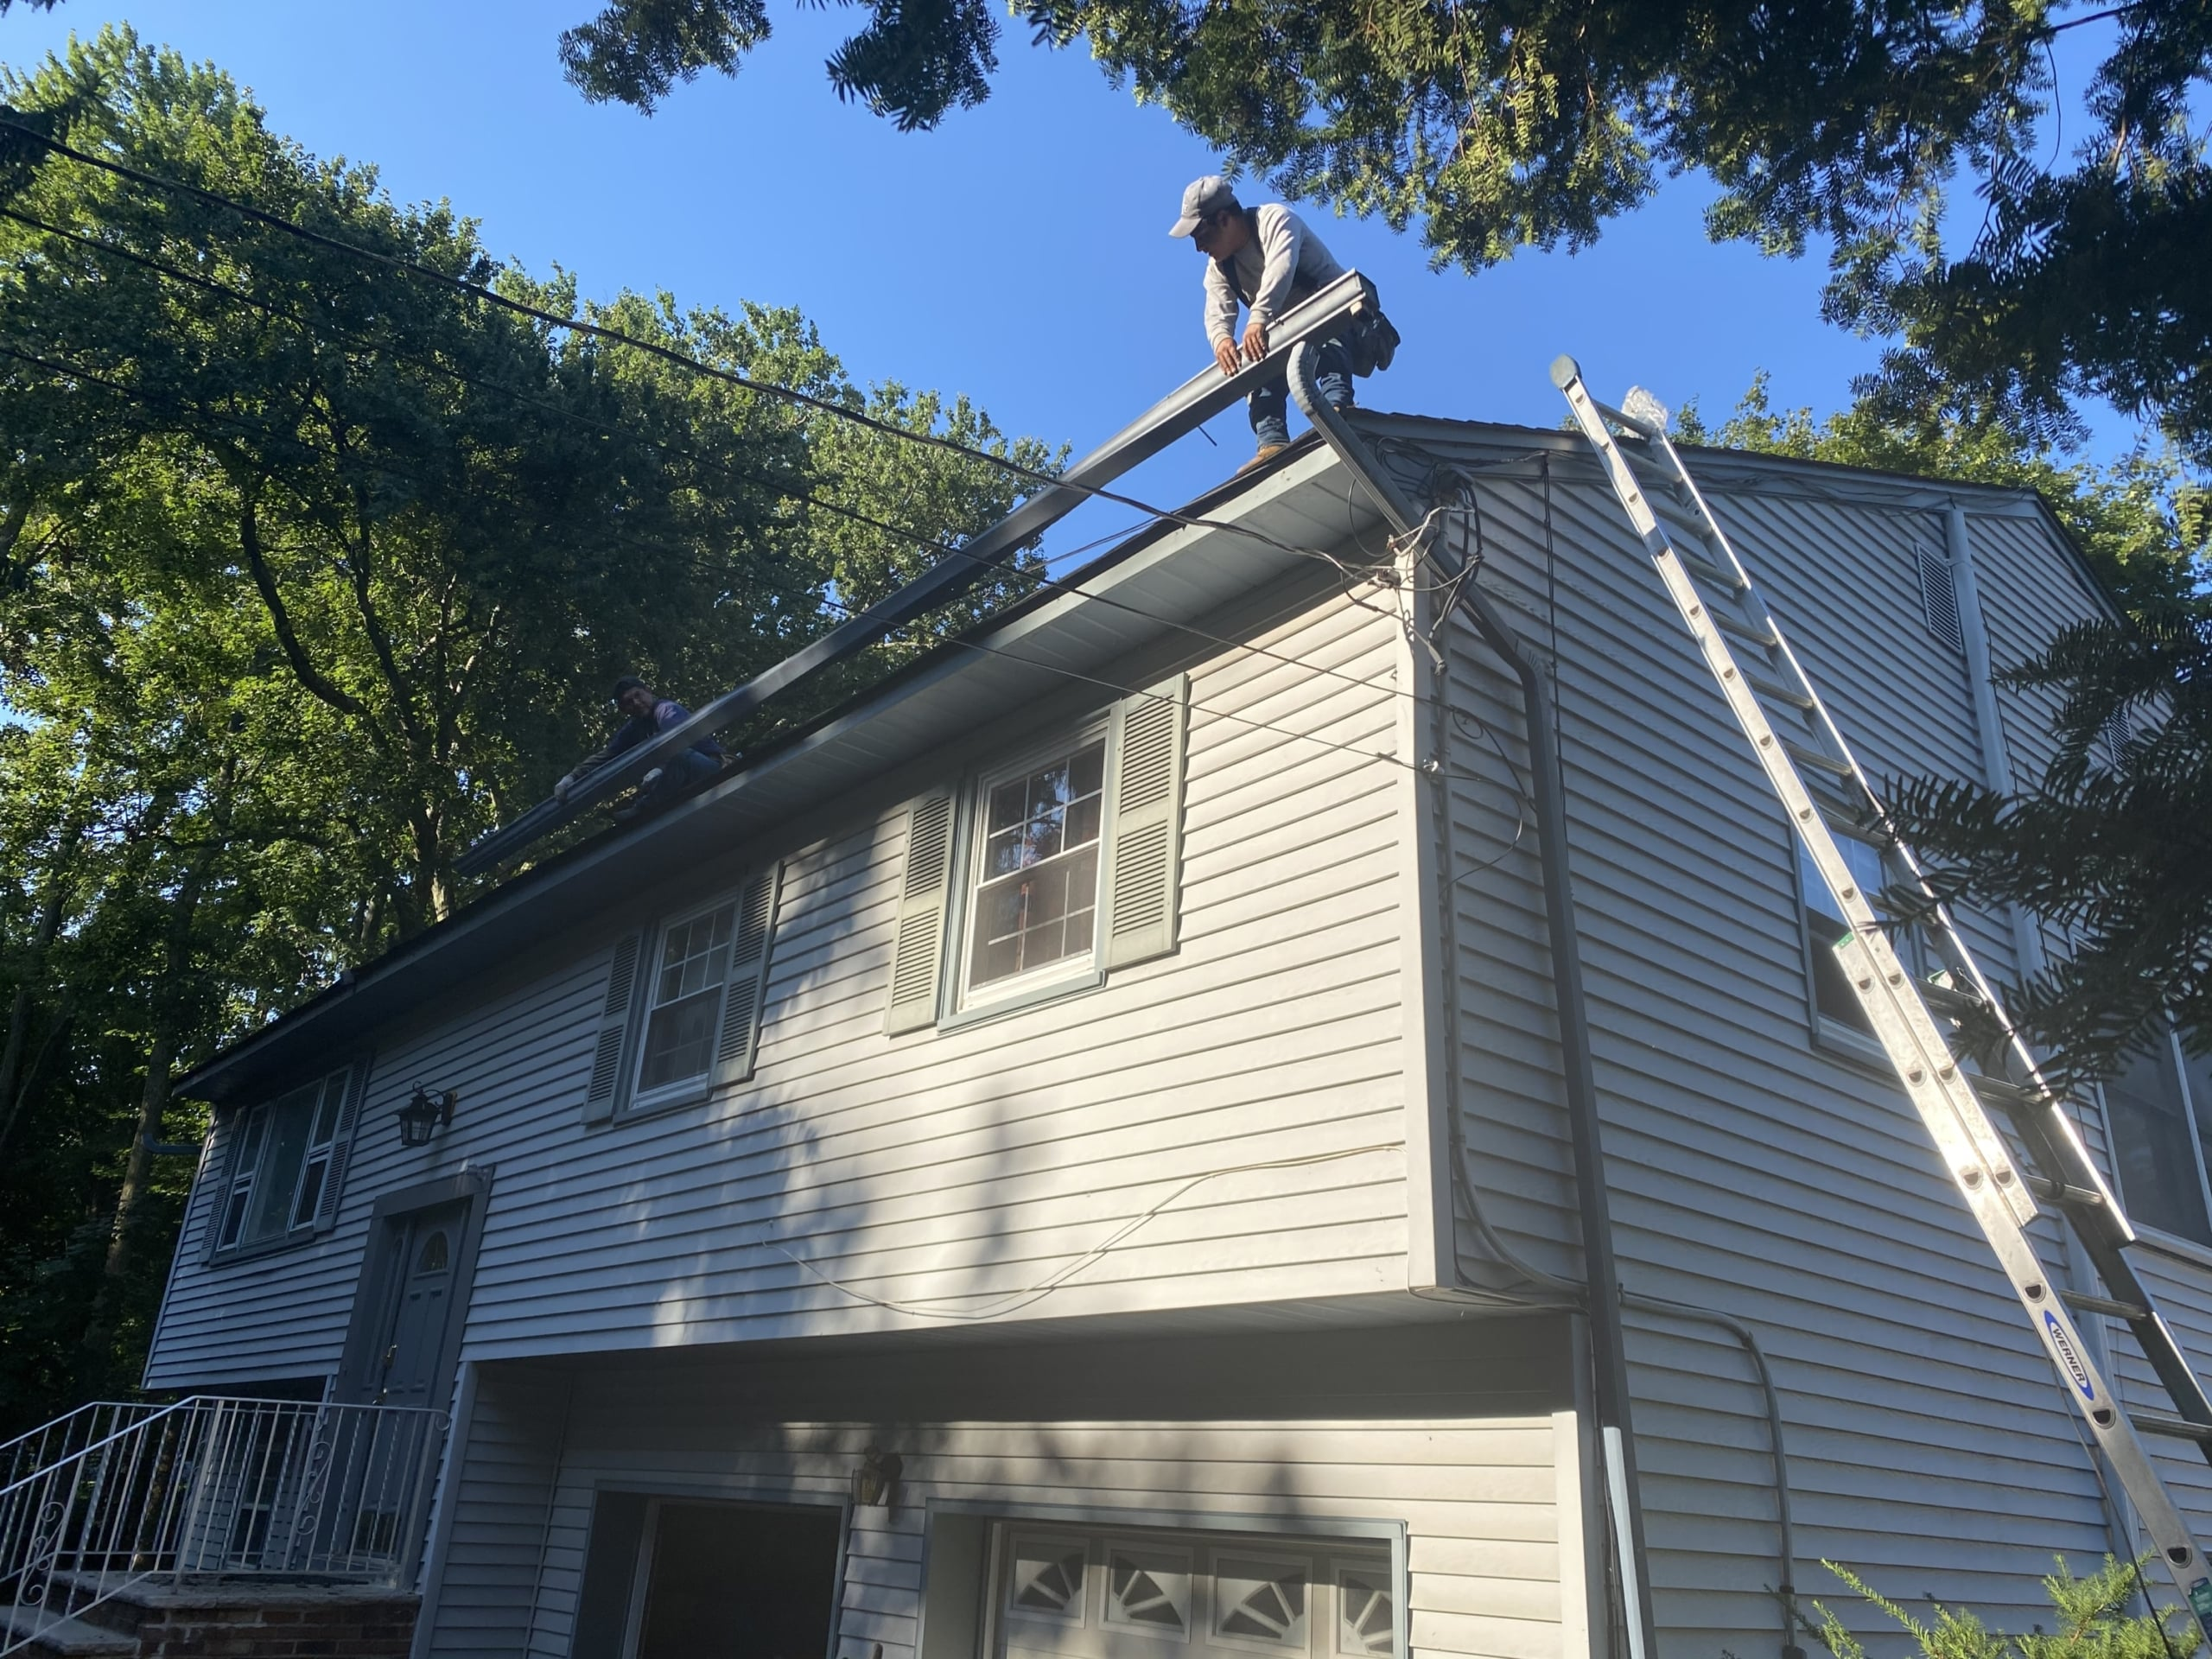 gutter replacement in bergen county by superior seamless gutters